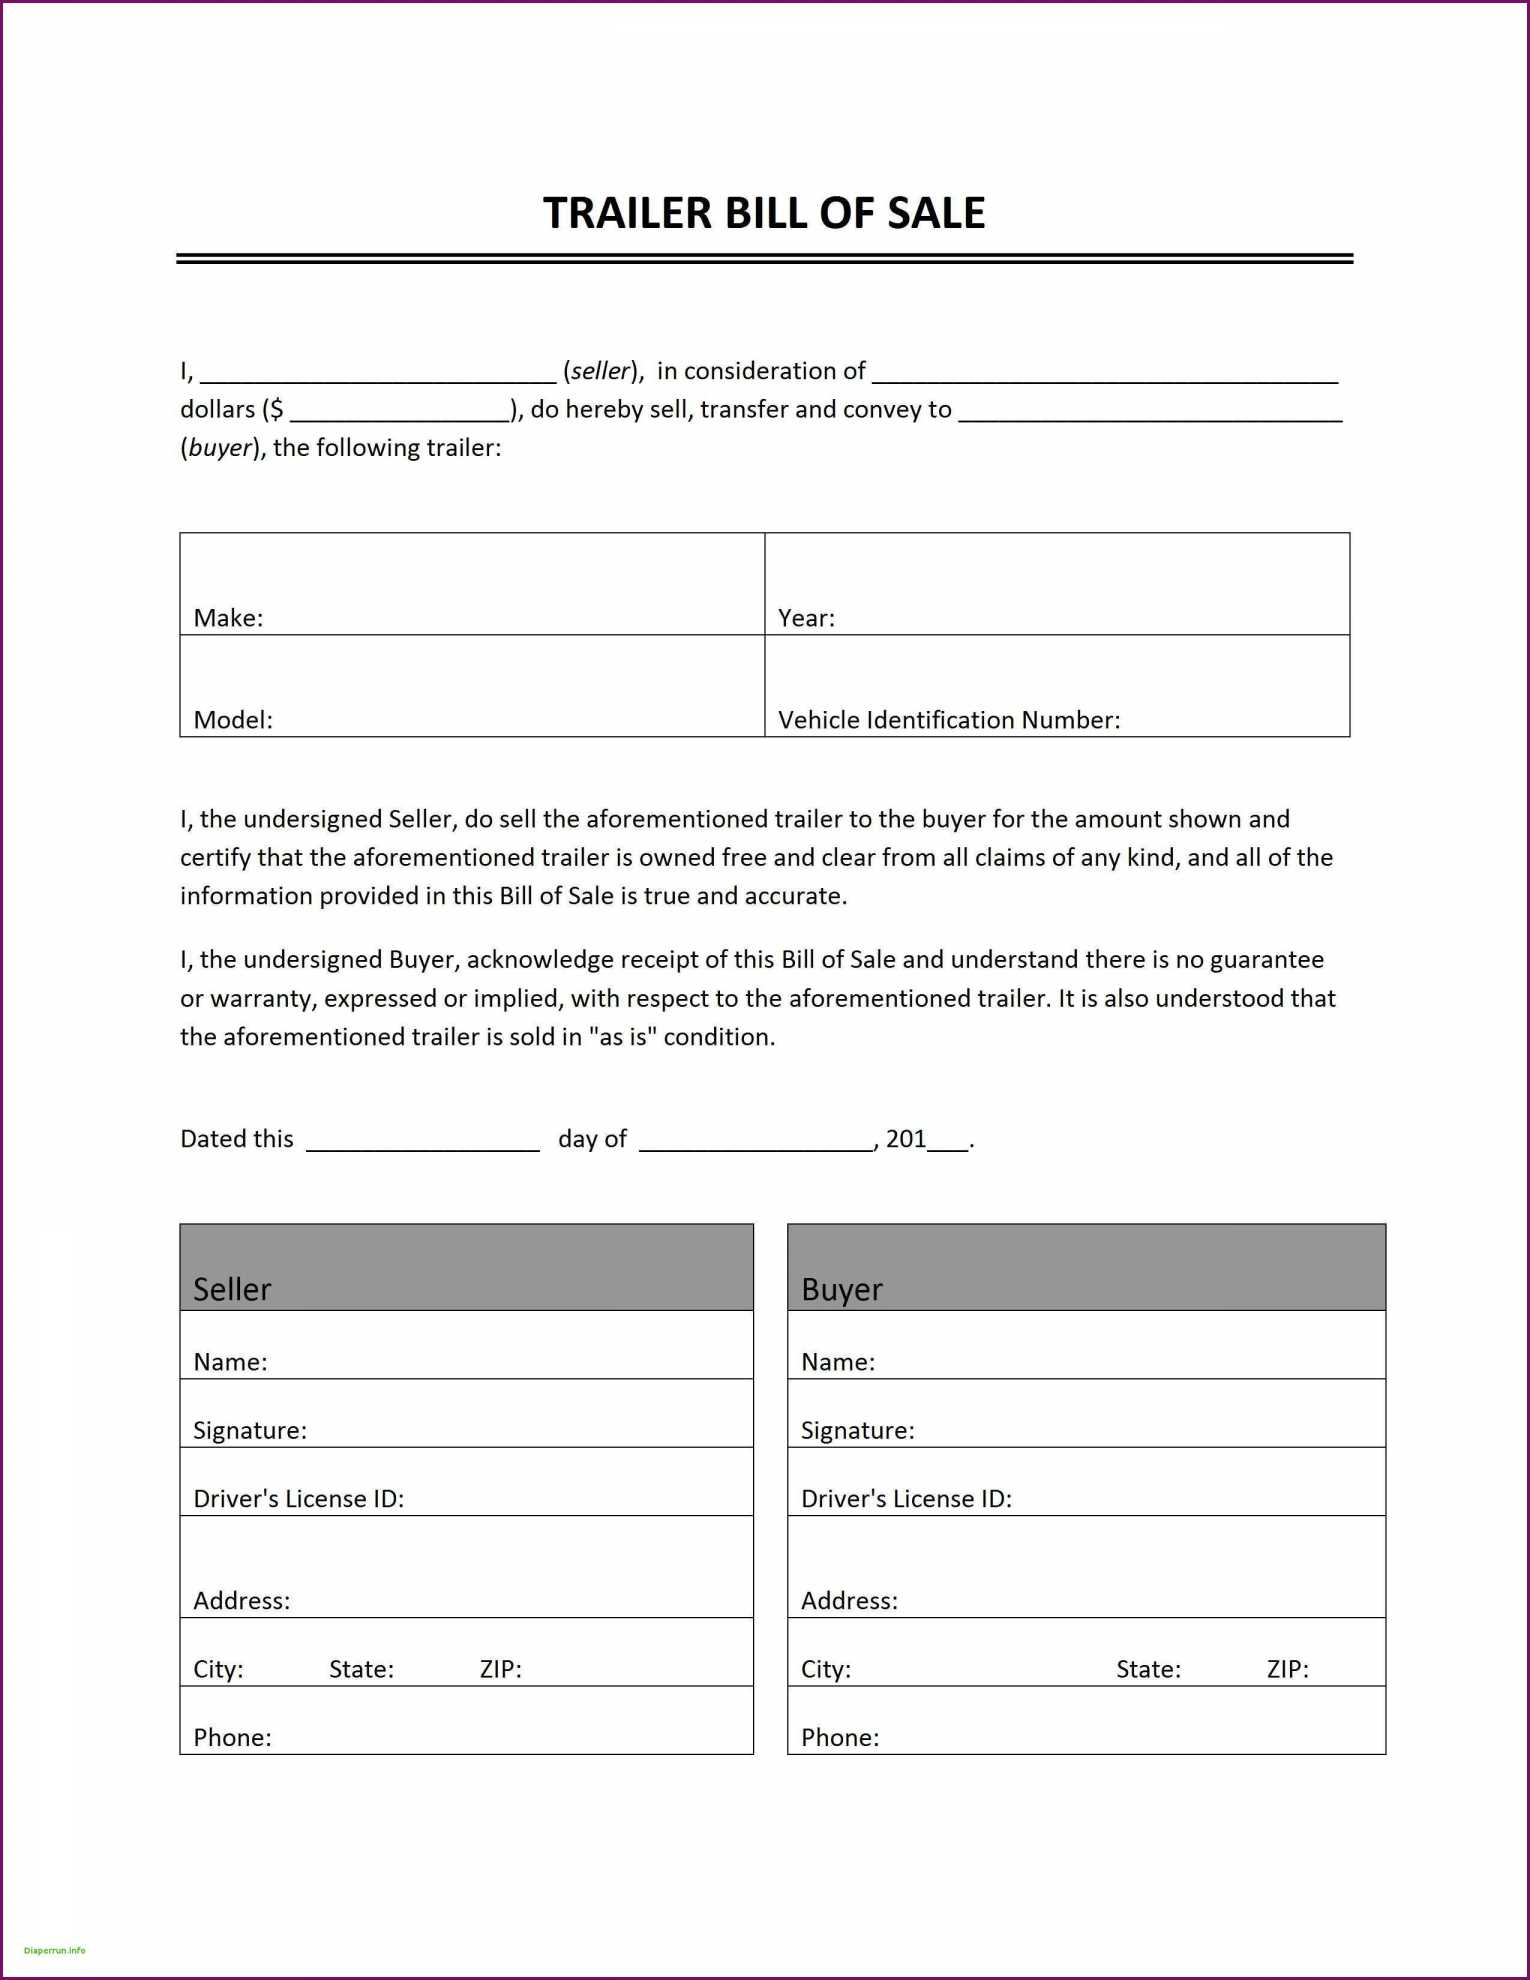 Florida Financial Affidavit Excel Spreadsheet Within Bill Of Sale Form Free Template Us Lawdepot Frequently Asked